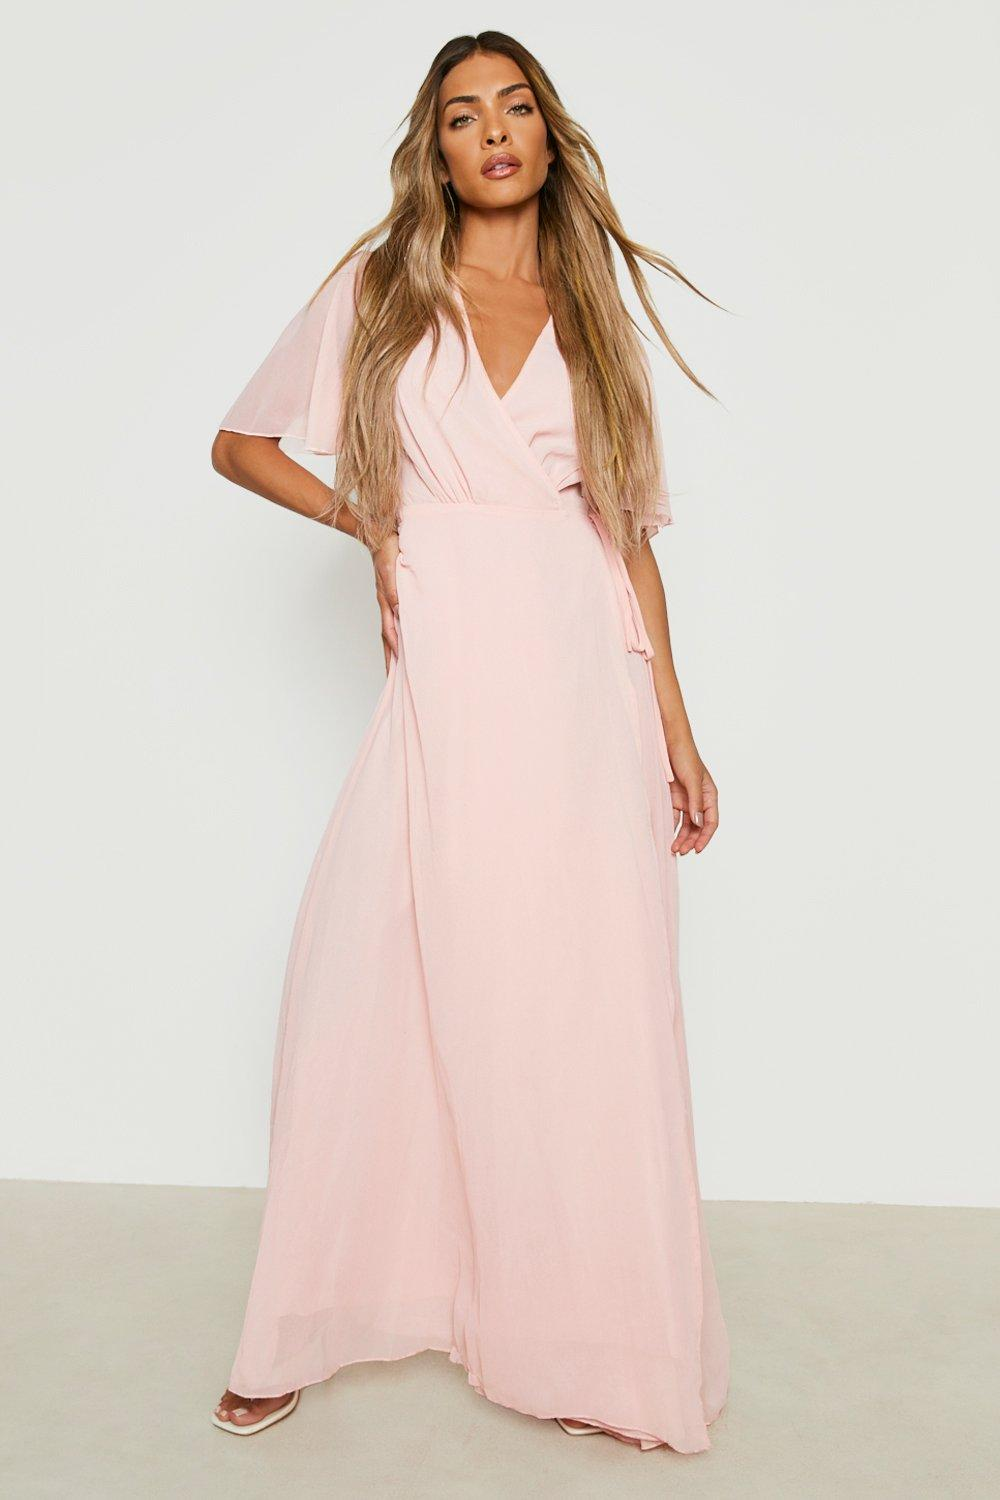 70s Prom, Formal, Evening, Party Dresses Womens Chiffon Angel Sleeve Wrap Maxi Bridesmaid Dress - Pink - 10 $28.00 AT vintagedancer.com